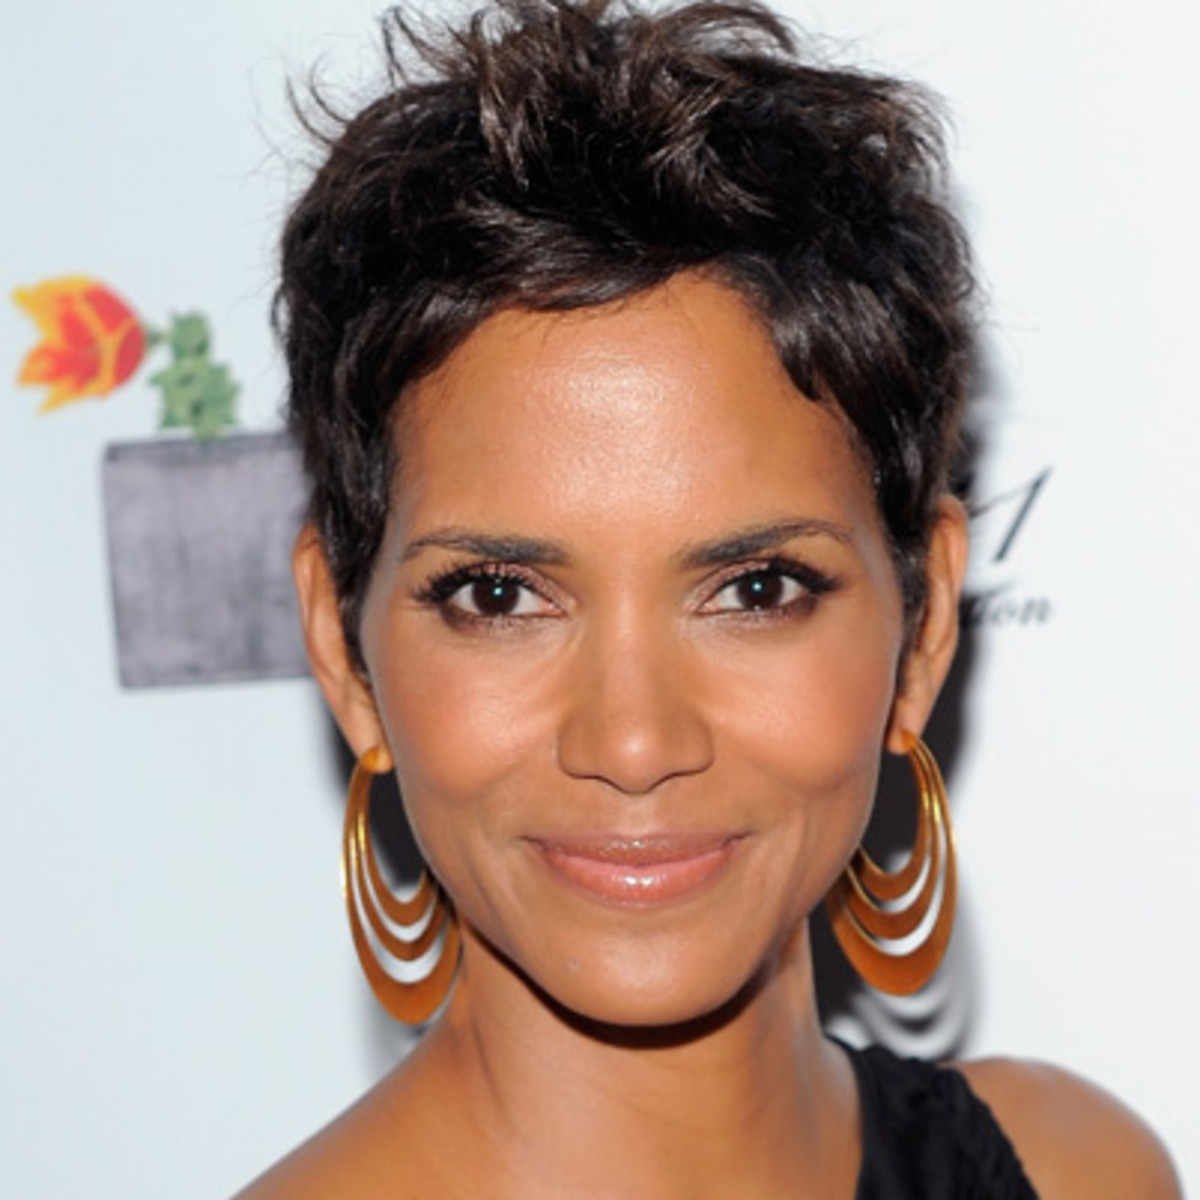 Halle berry and her sister